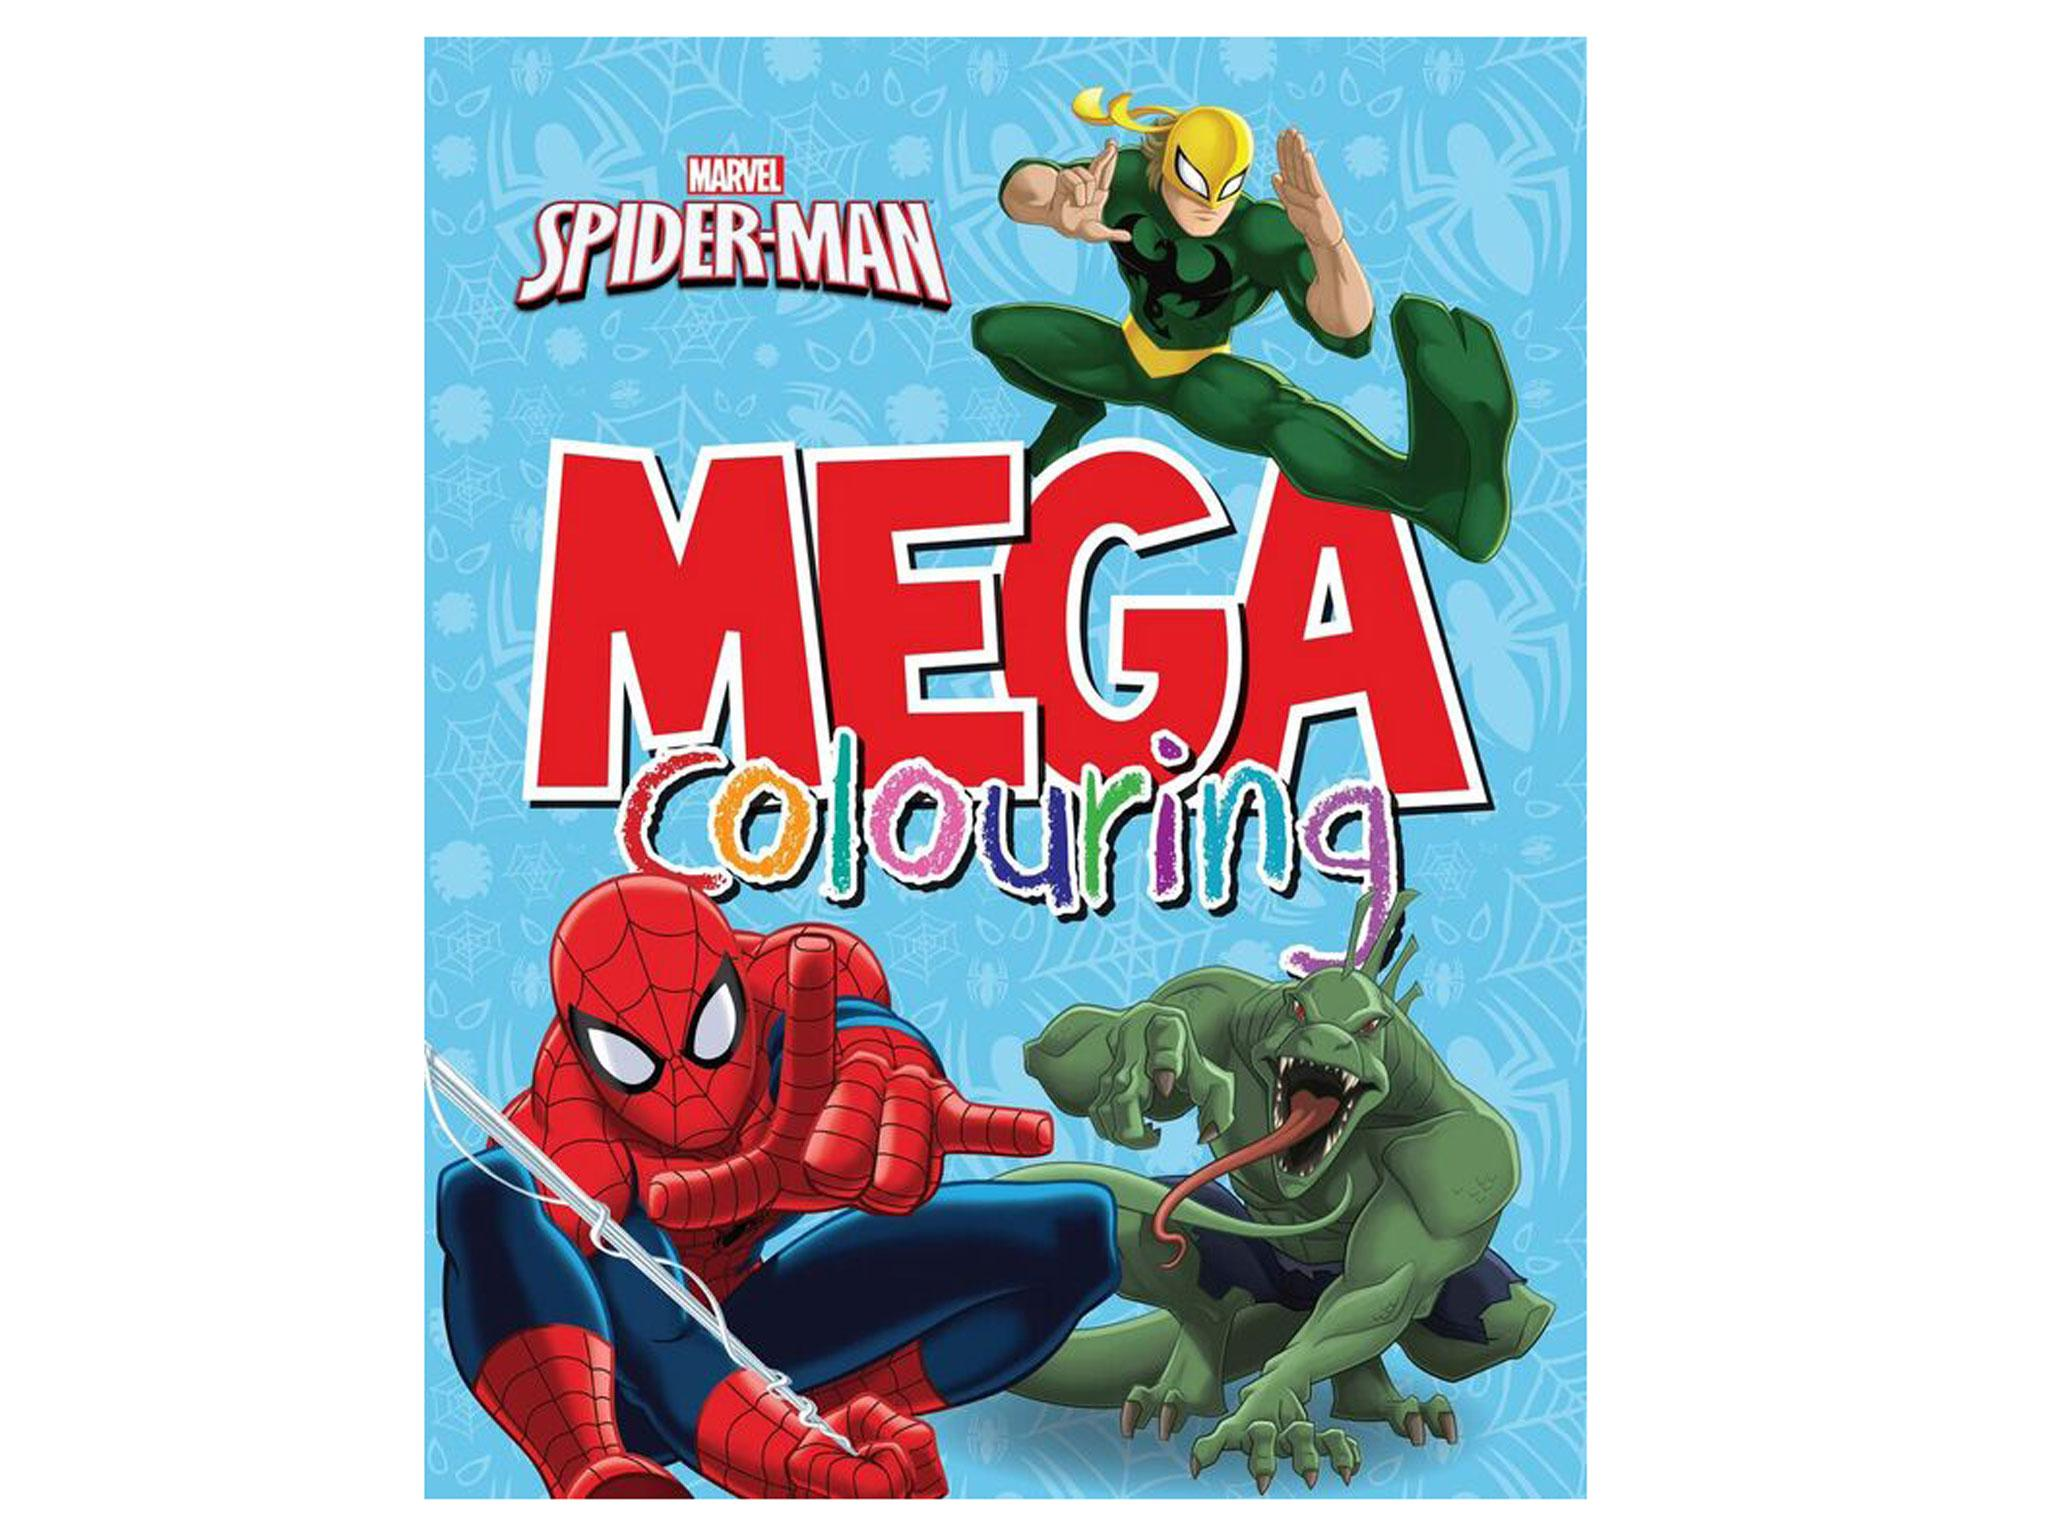 If Cute Animals And Pretty Patterns Dont Float Your Childs Boat Then These 90 Pages Of Marvel Superheroes Villains Focusing On Spider Man With